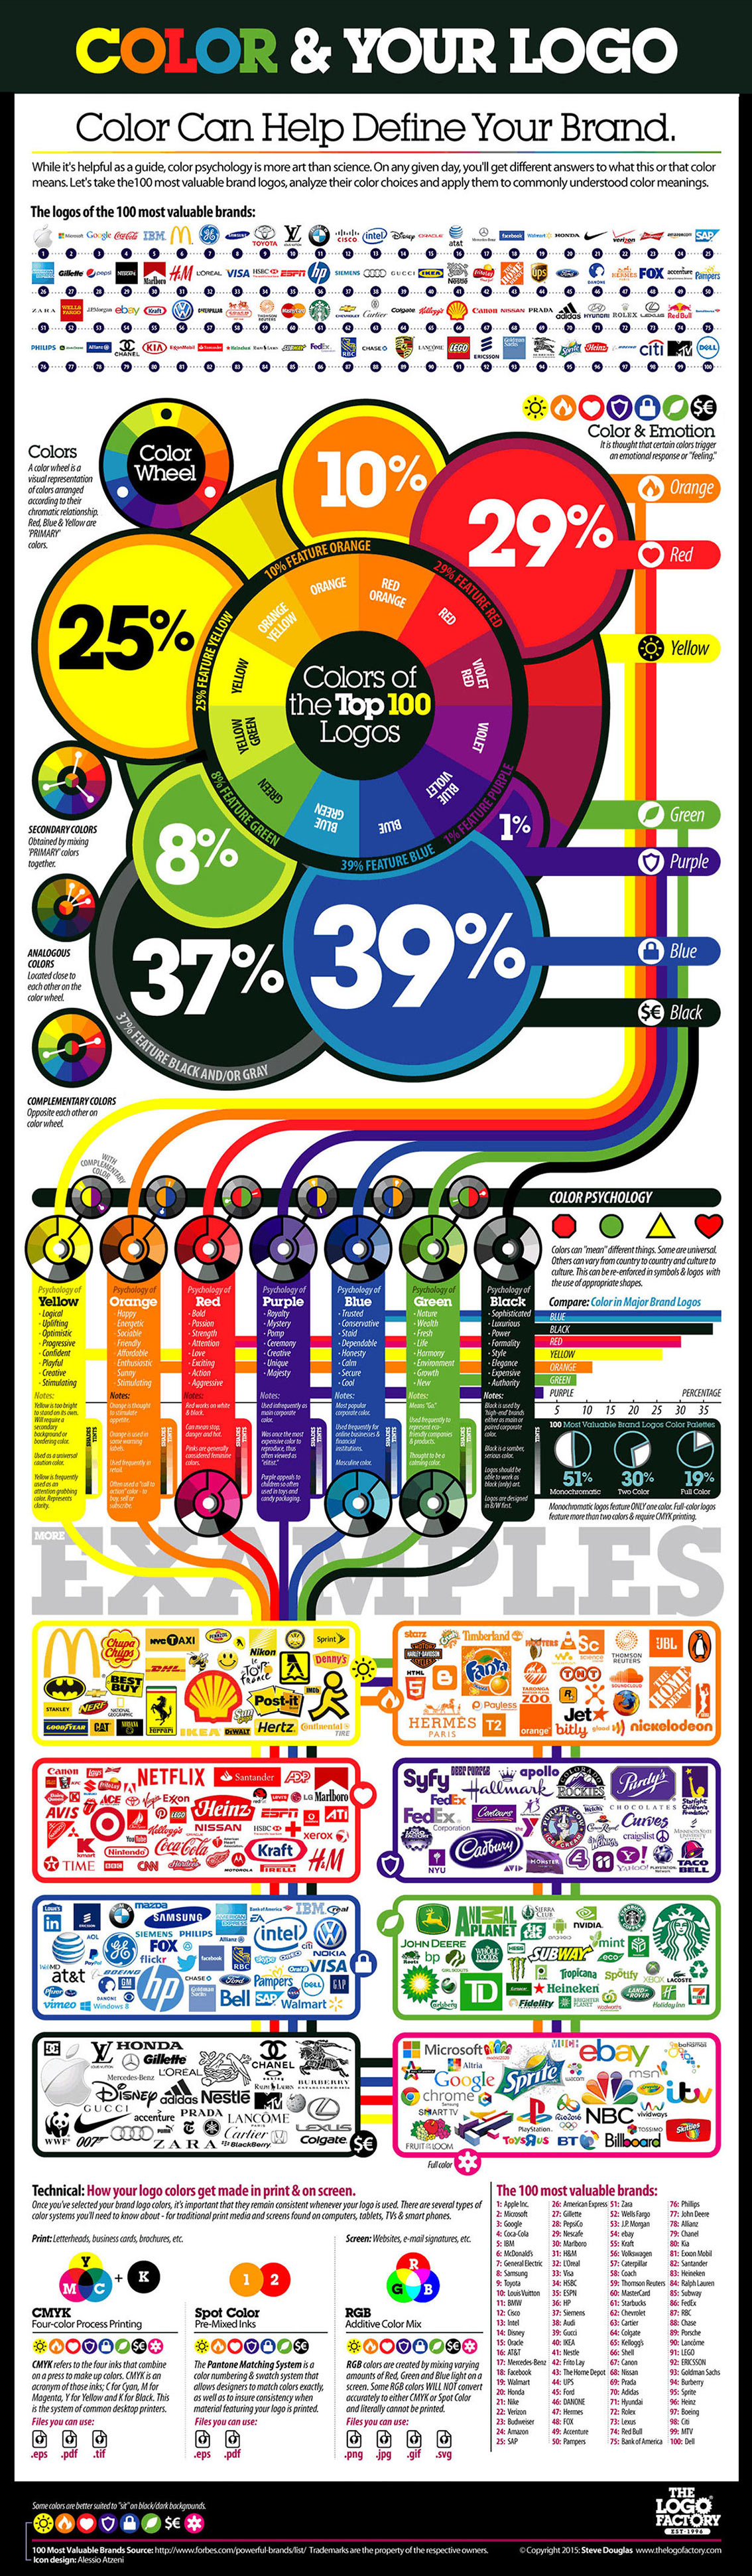 The Best Colors for Logo Design Infographic